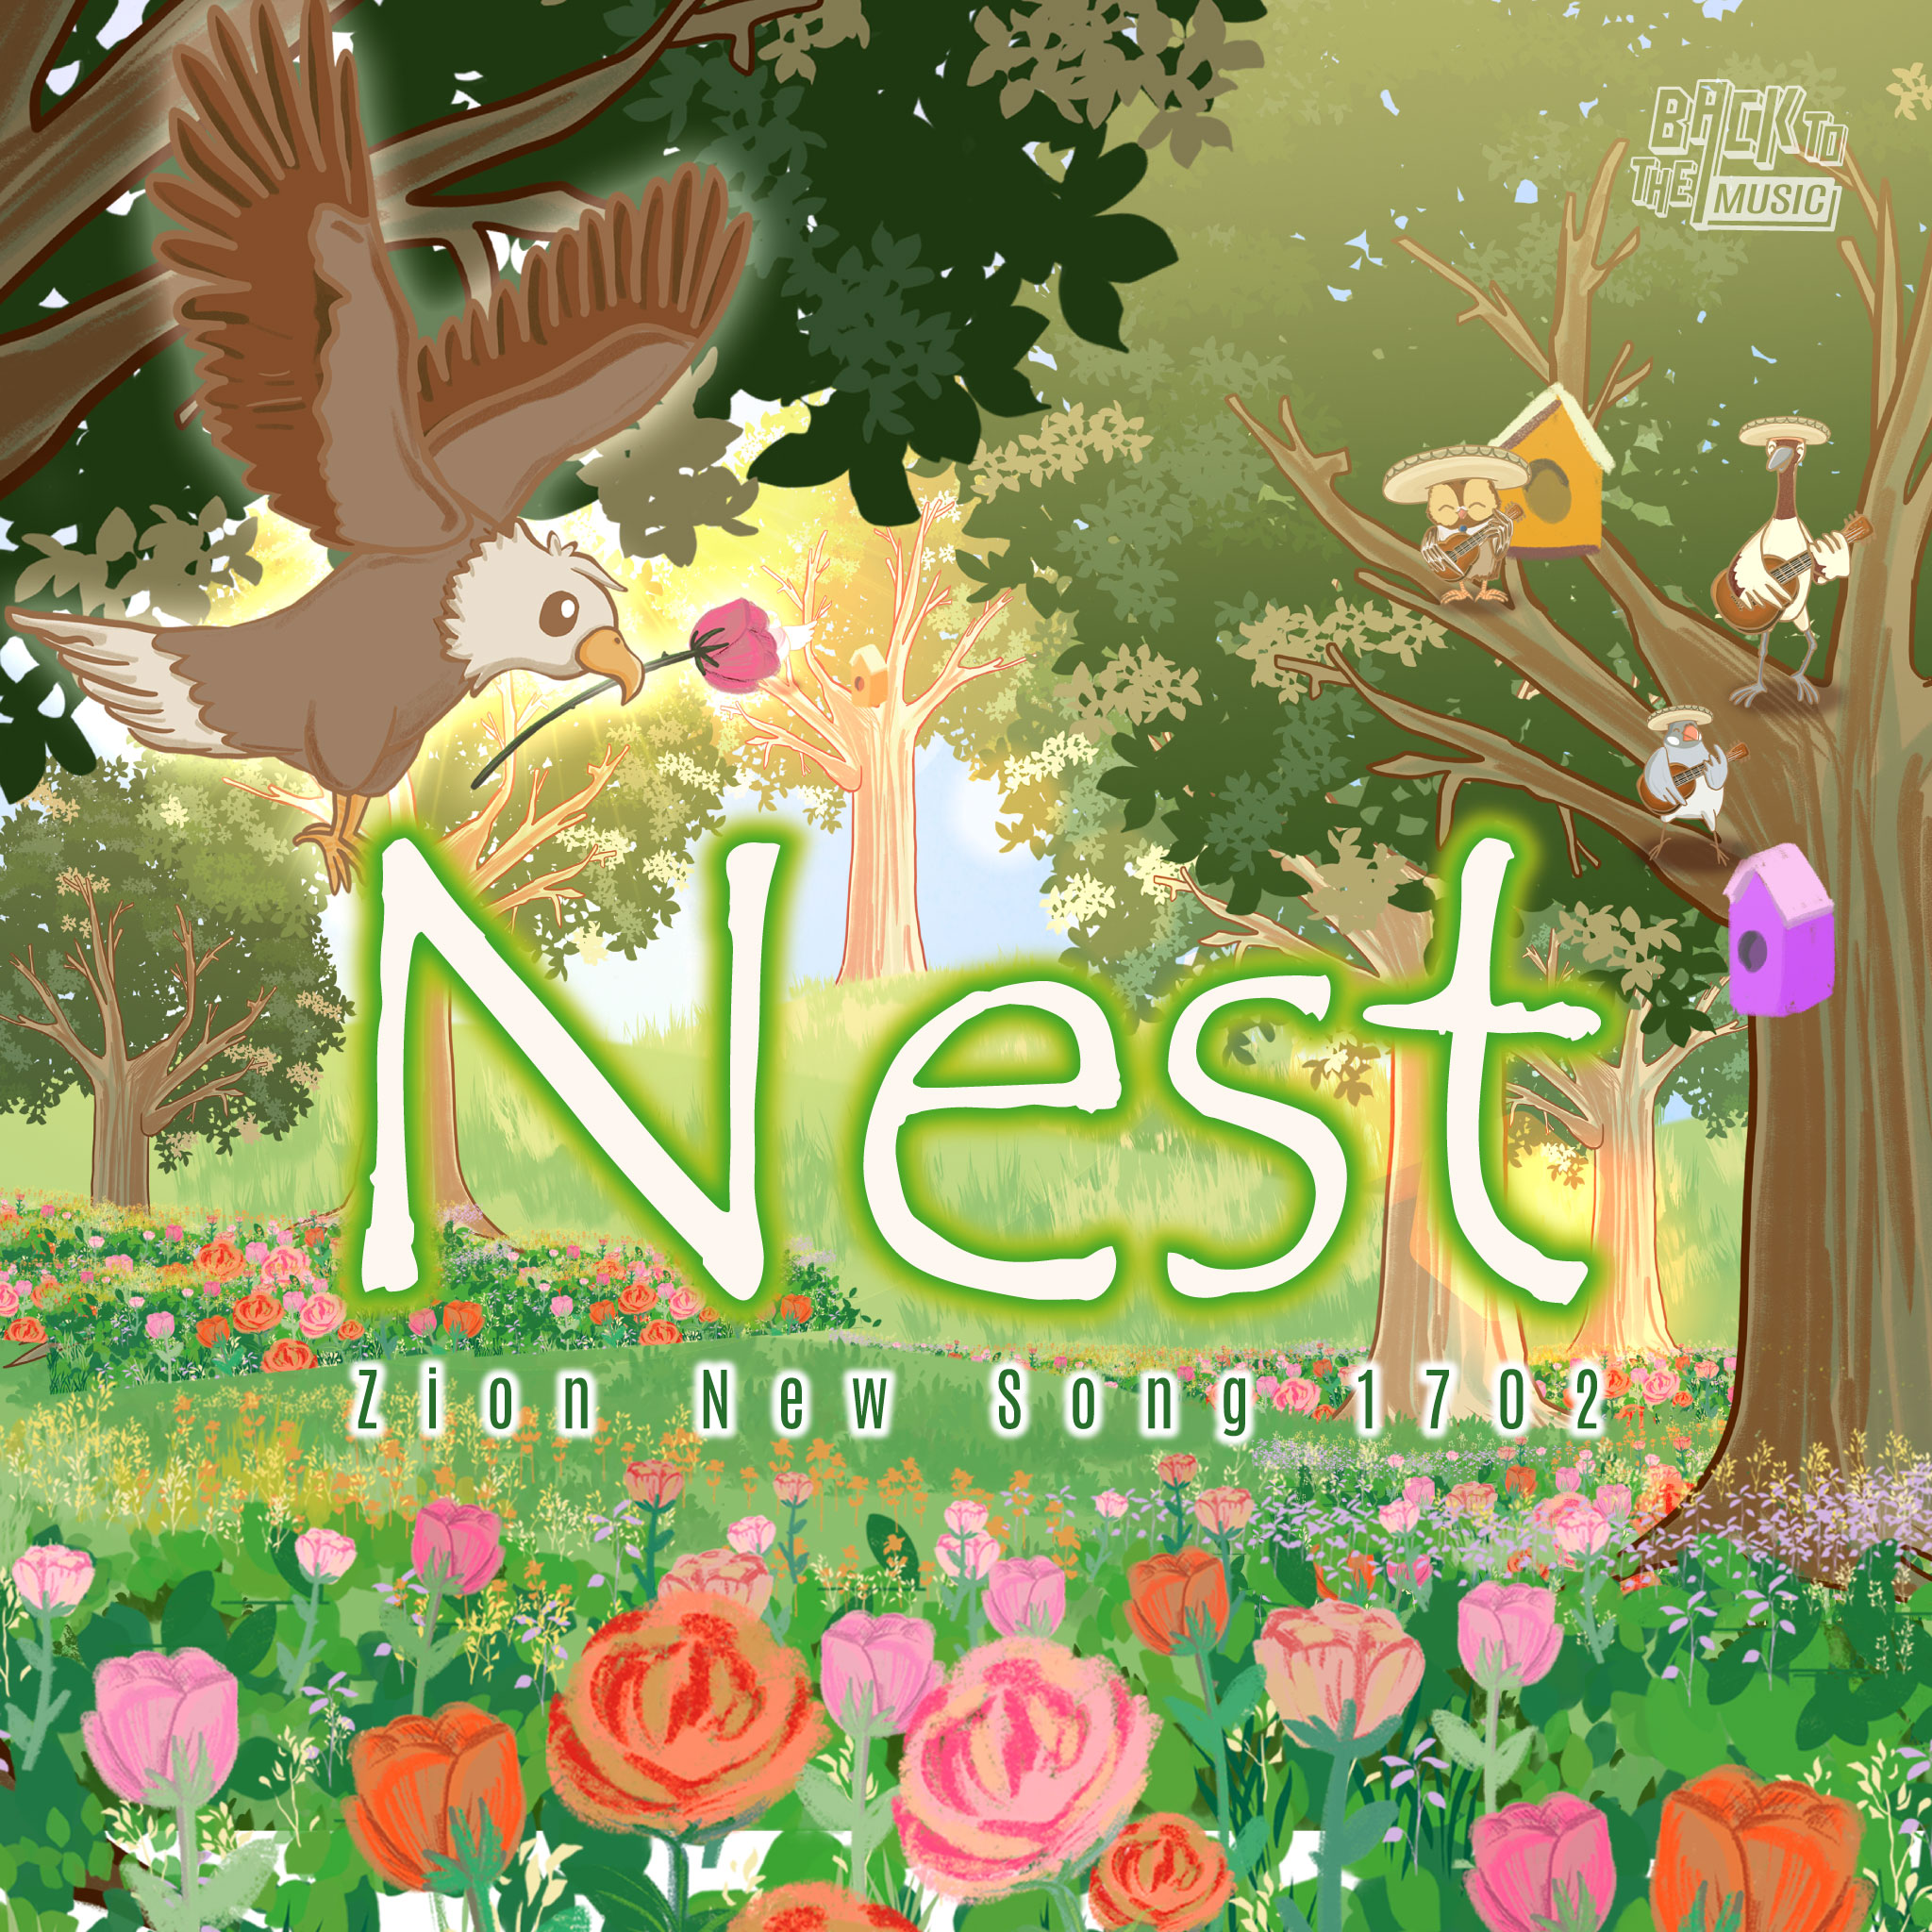 【Nest】| Music | Praise the Lord 2021 | Back To The Music